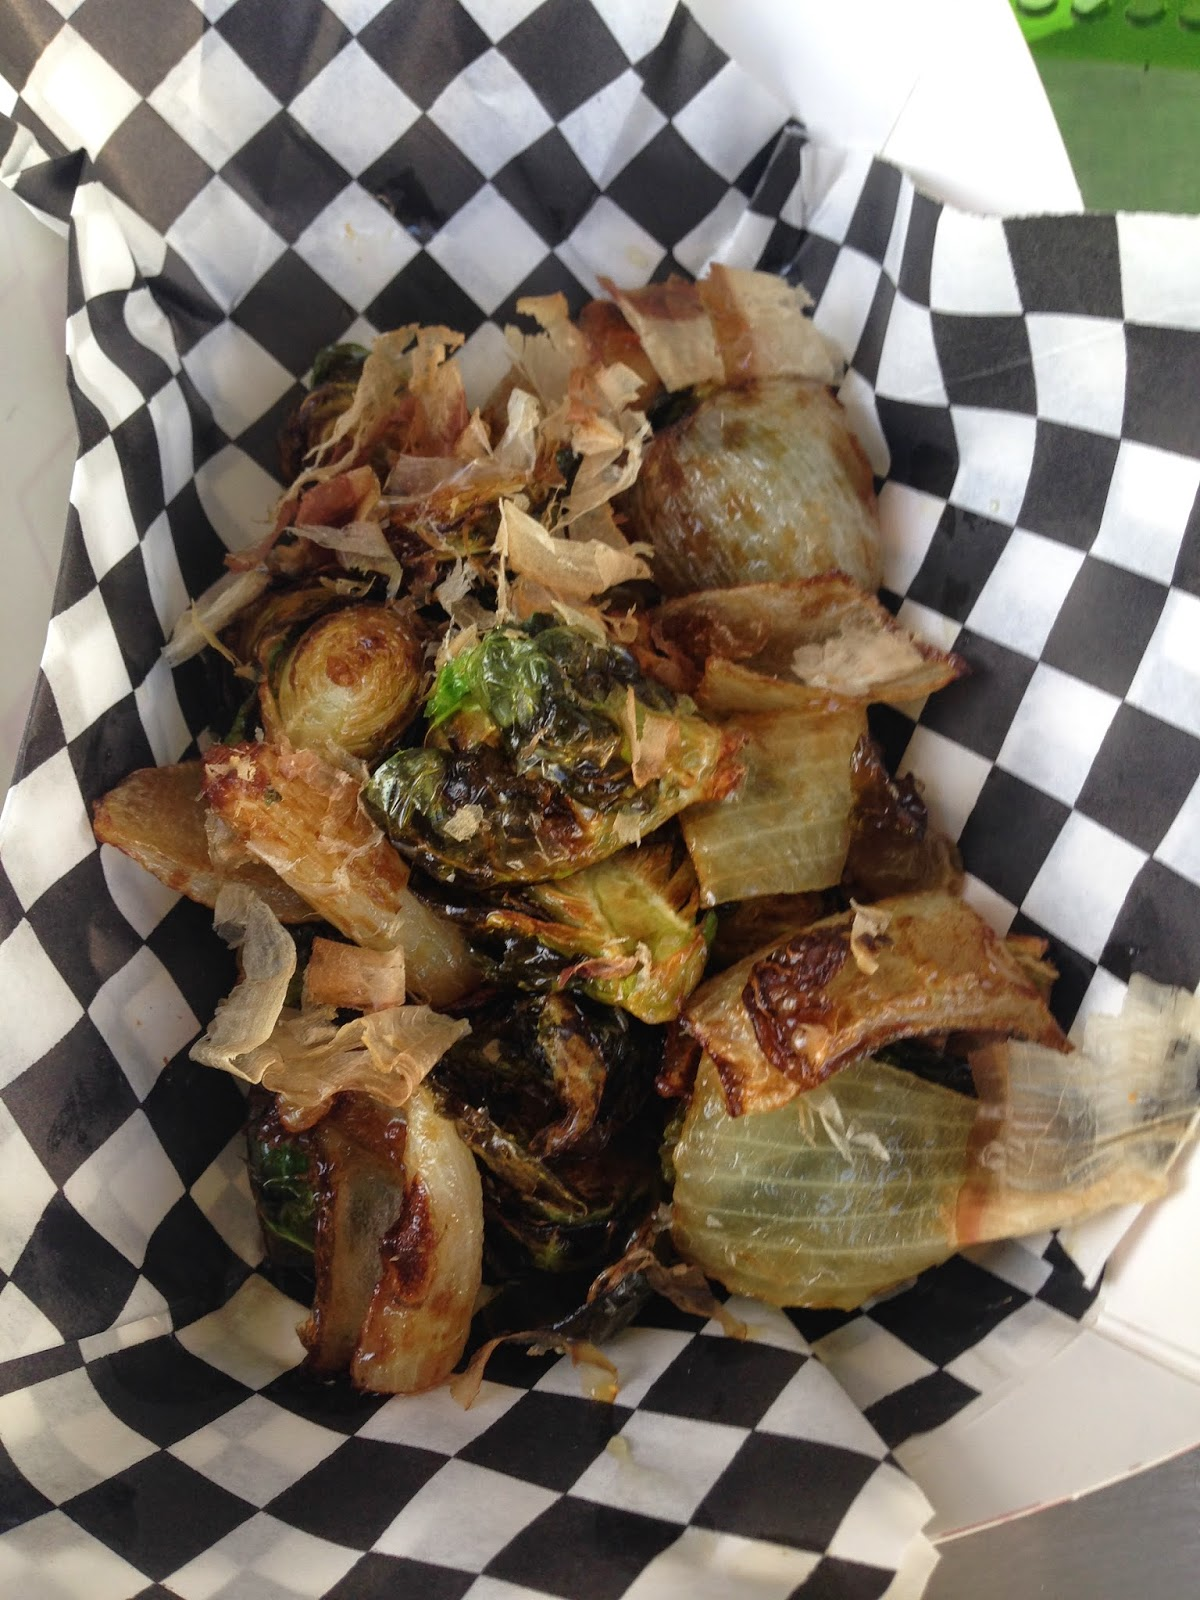 Wokker Texas Ranger Food Truck Bonito Brussels Sprouts